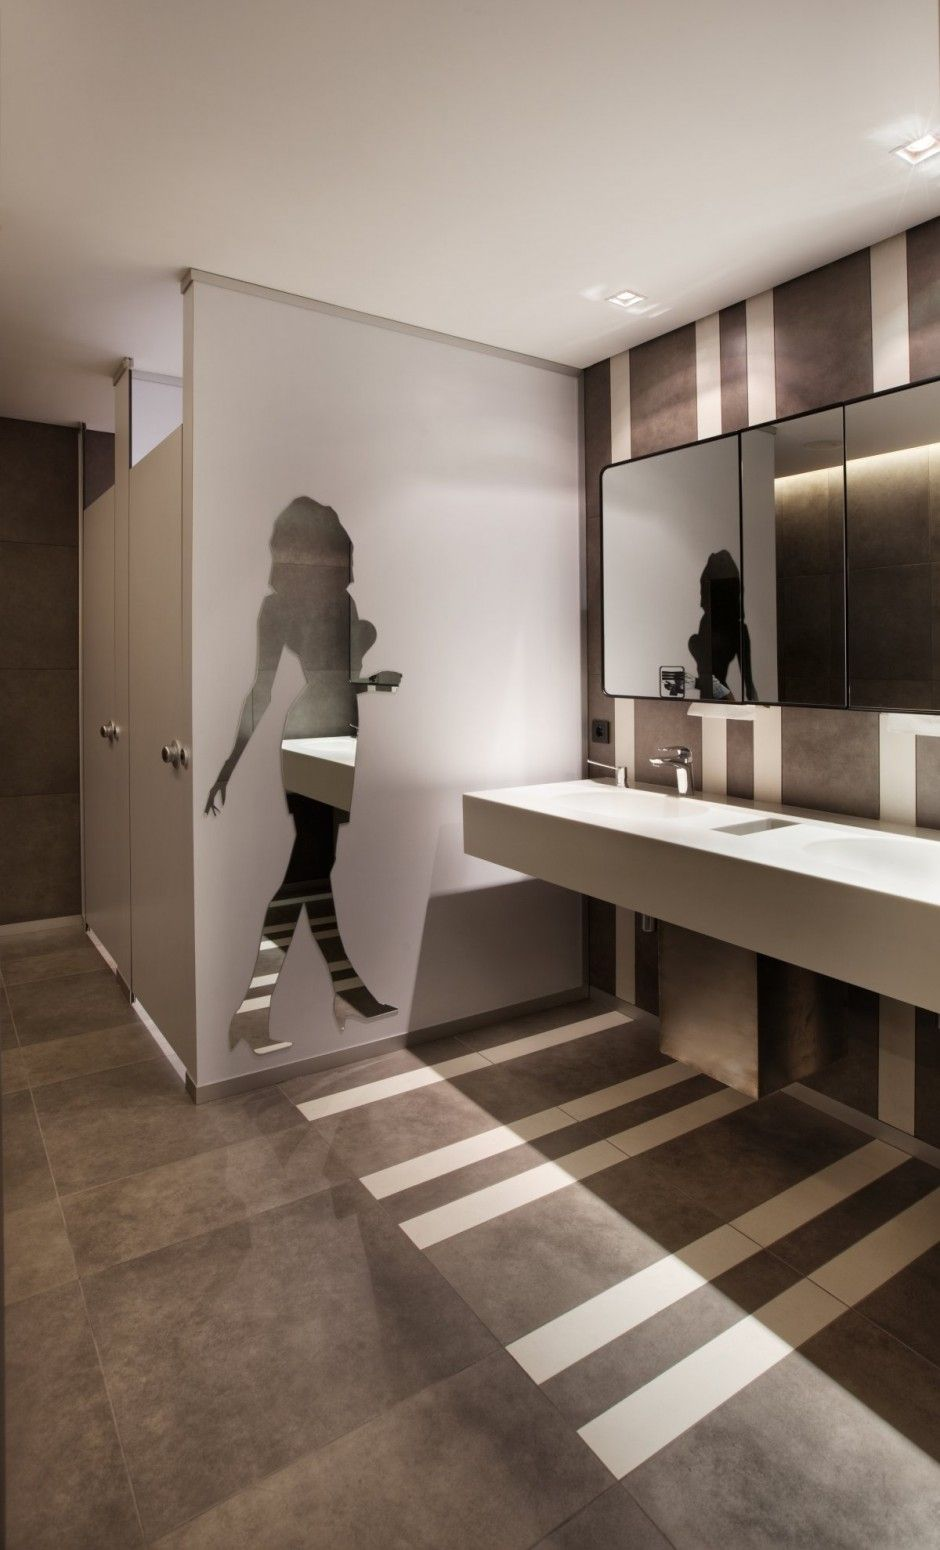 Turkcell Maltepe Plaza By Mimaristudio In Istanbul This Bathroom Tres Chic Architecture